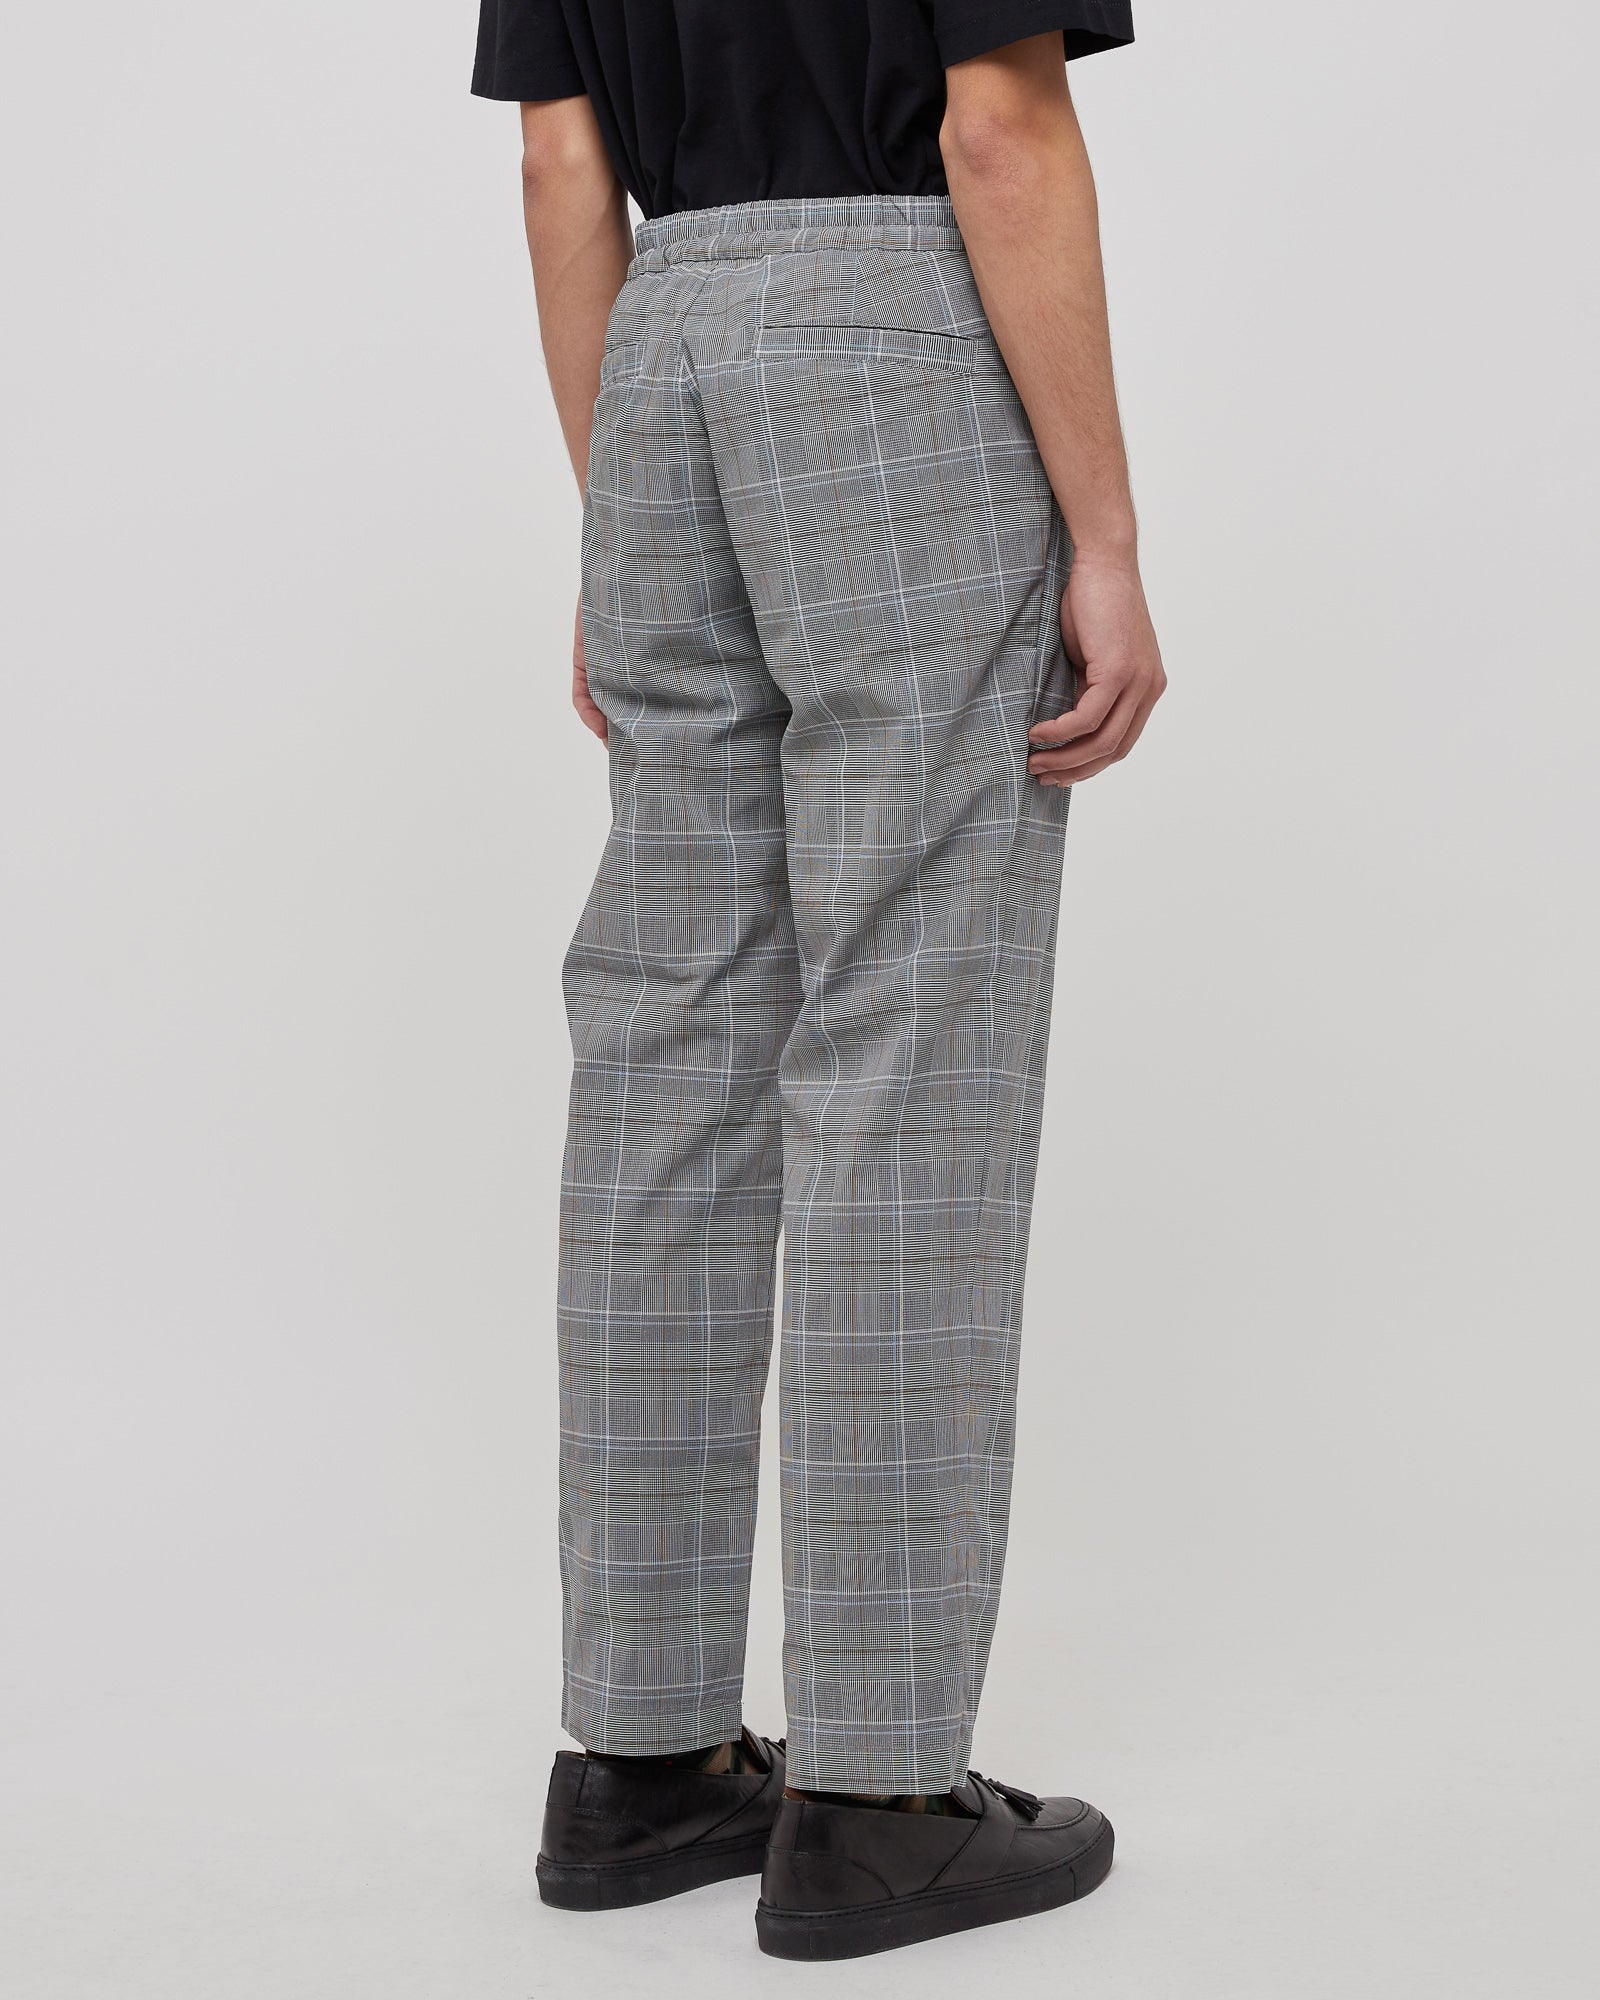 Regular Straight Pants in Gray Check